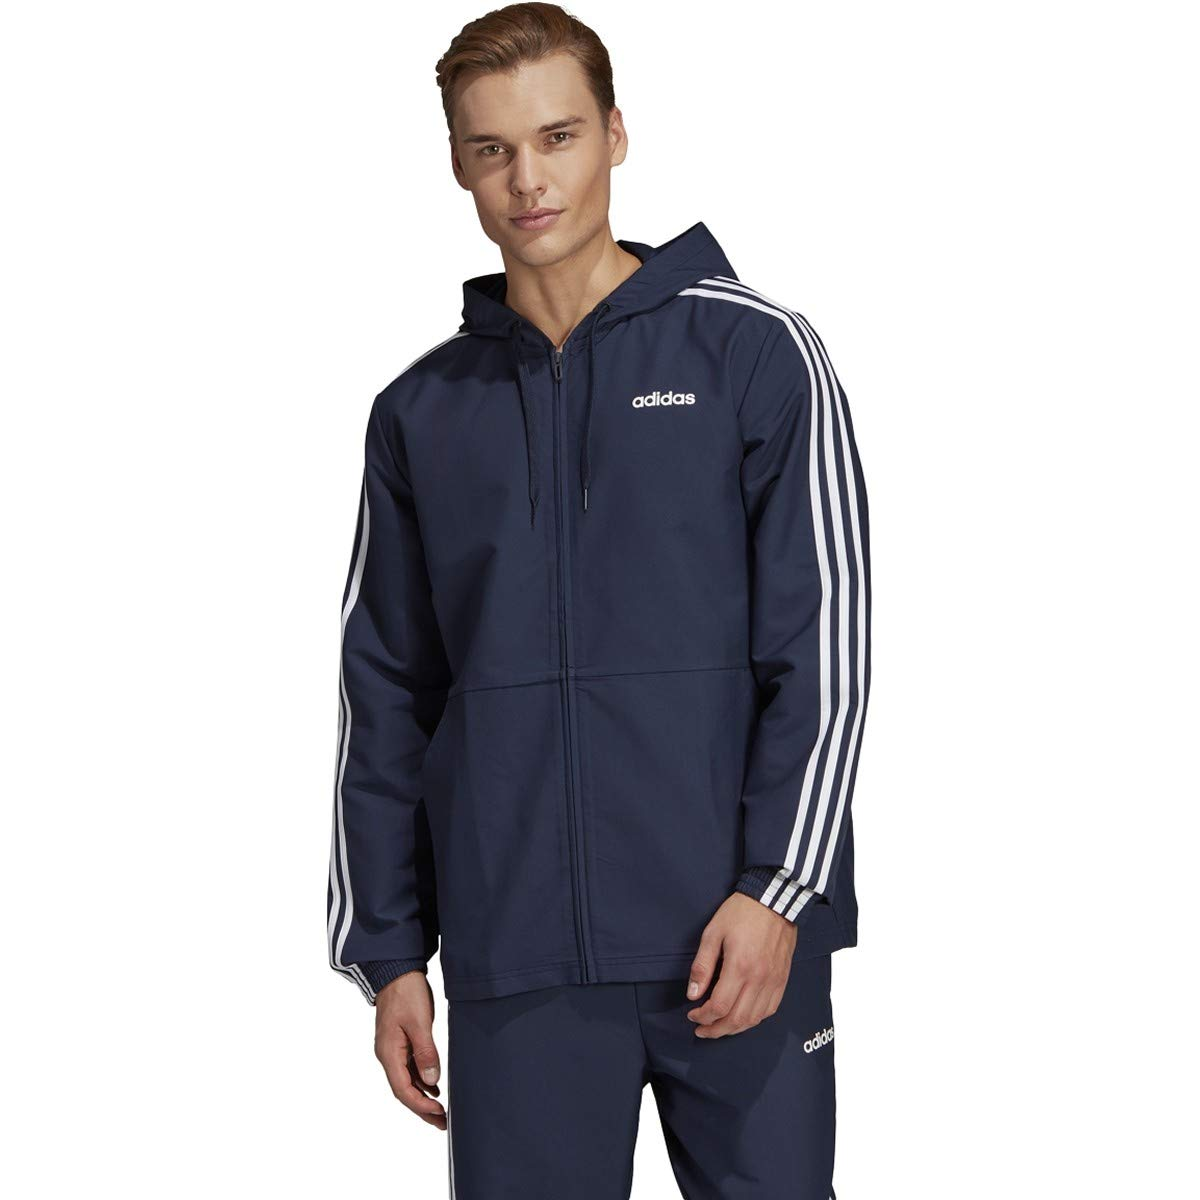 adidas Essentials Men's 3-Stripes Windbreaker, Legend Ink/White, MT by adidas